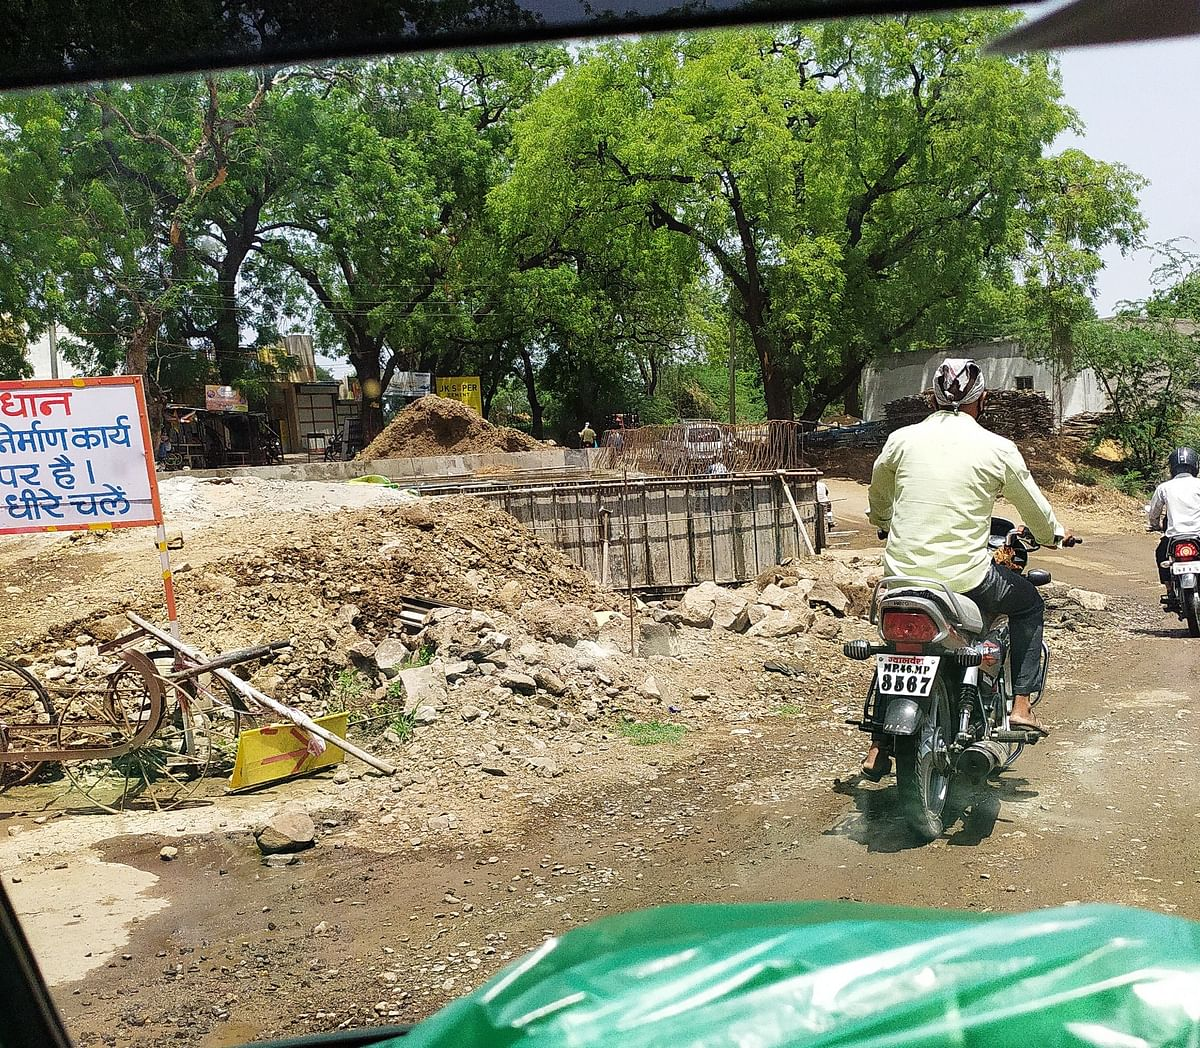 A view of culvert construction in Rajpur tehsil